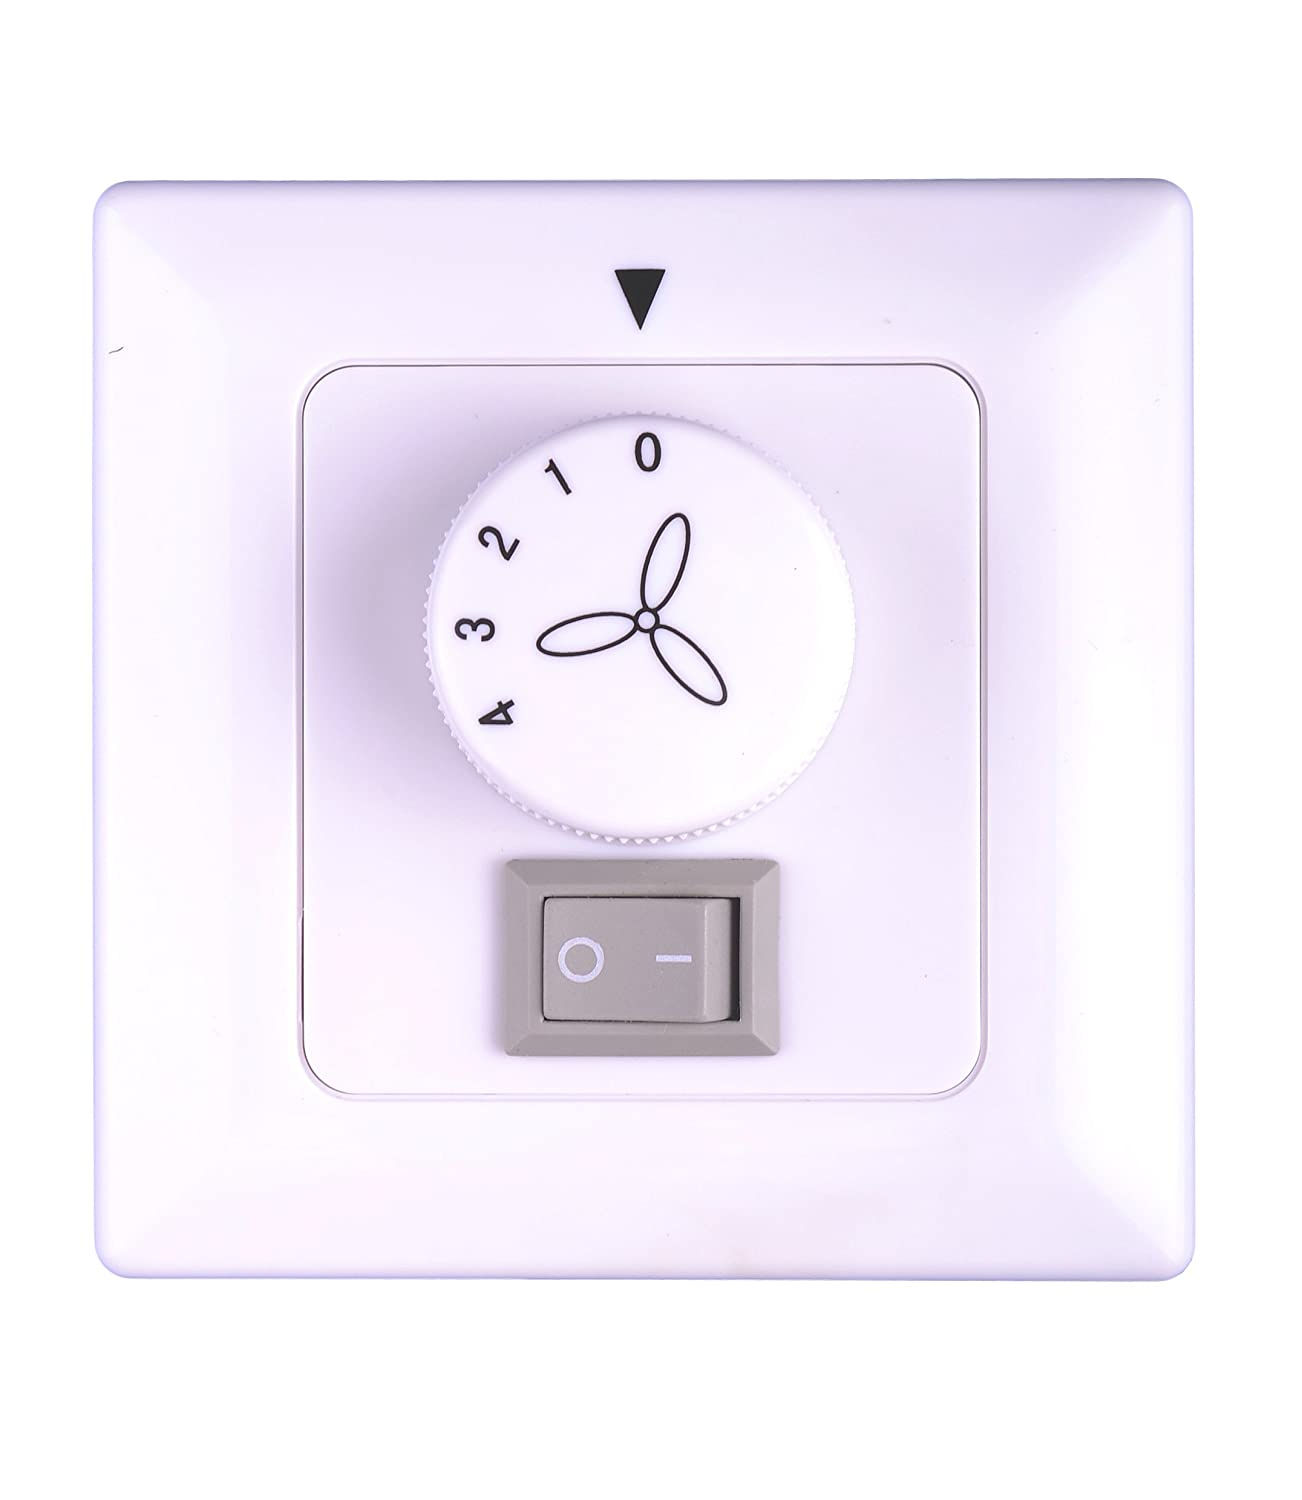 Pepeo Wall Control for Ceiling Fans without Light - Flush mount, white 85215